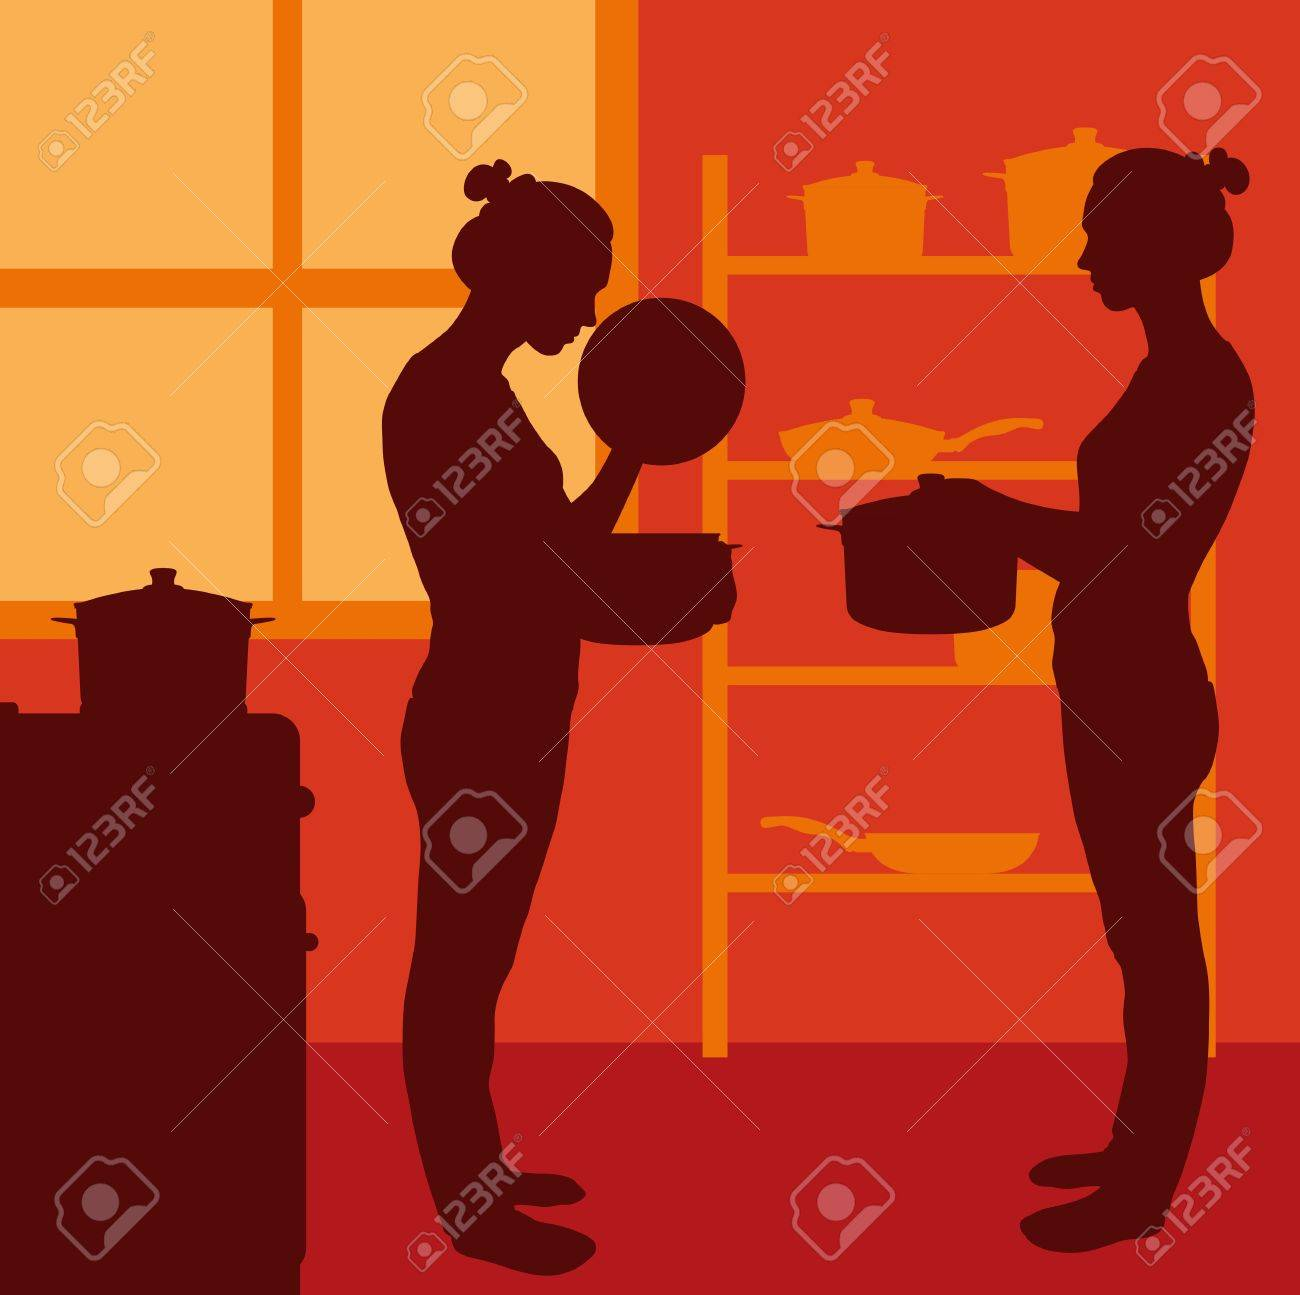 Cook woman or housewife in kitchen vector background Stock Vector - 17870928